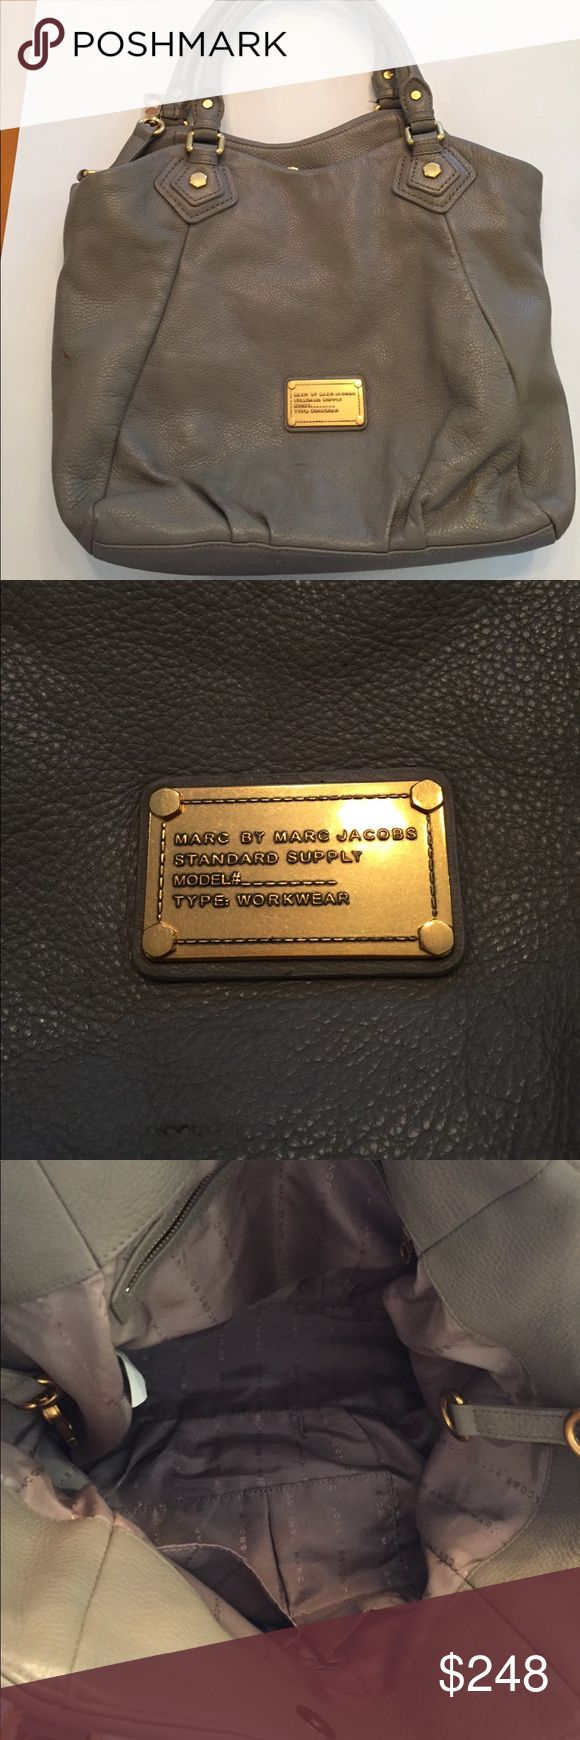 Marc By Marc Jacobs grey handbag!  Gorgeous Marc By Marc Jacobs grey hand bag. This hand bag is made with the softest leather. The grey color is so neutral that it can be worn all year round. It is in excellent condition. Marc By Marc Jacobs Bags Shoulder Bags